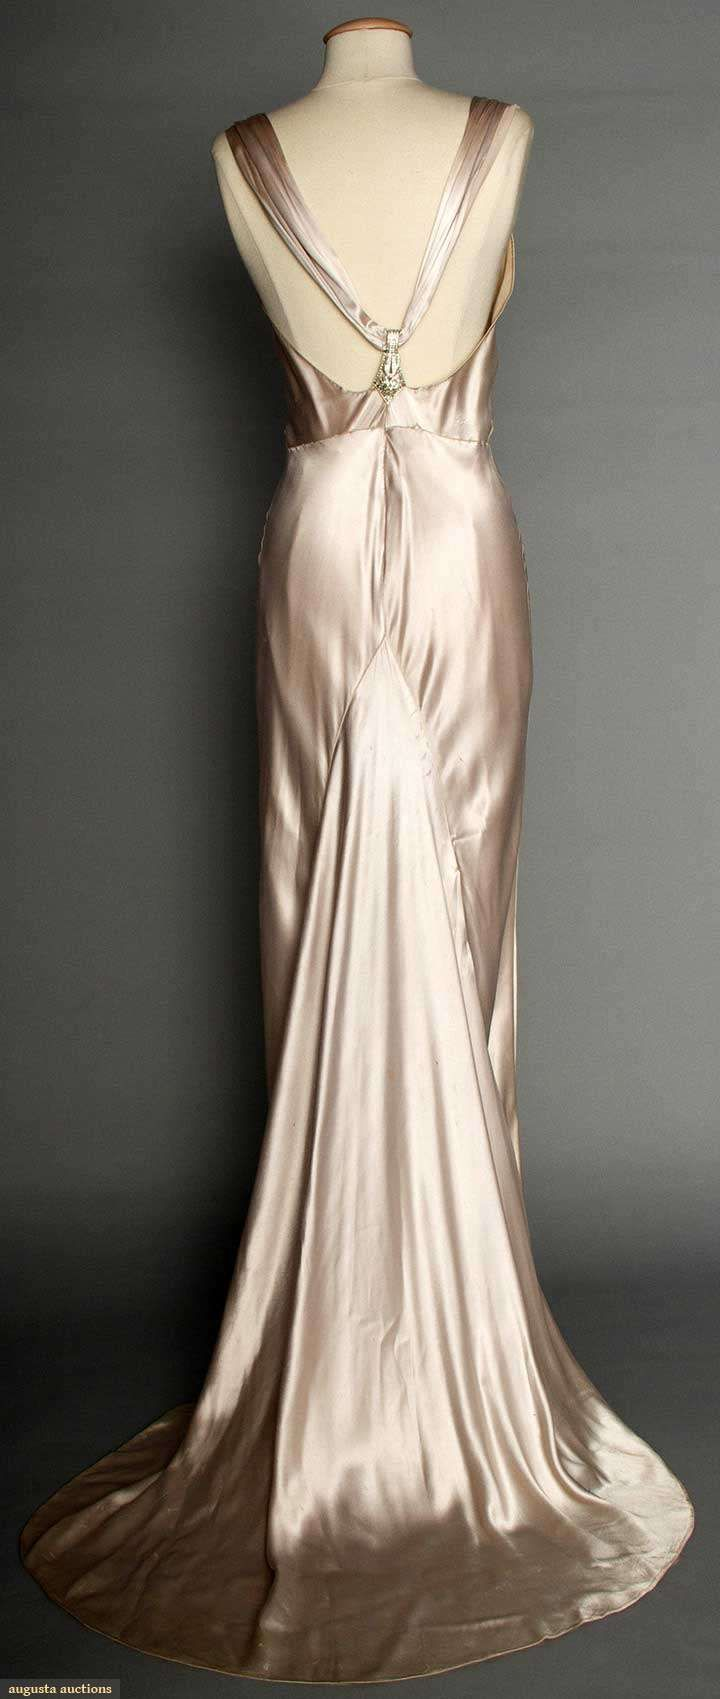 SILVER SATIN EVENING GOWN, 1930s Pale lavender/silver silk charmeuse ...